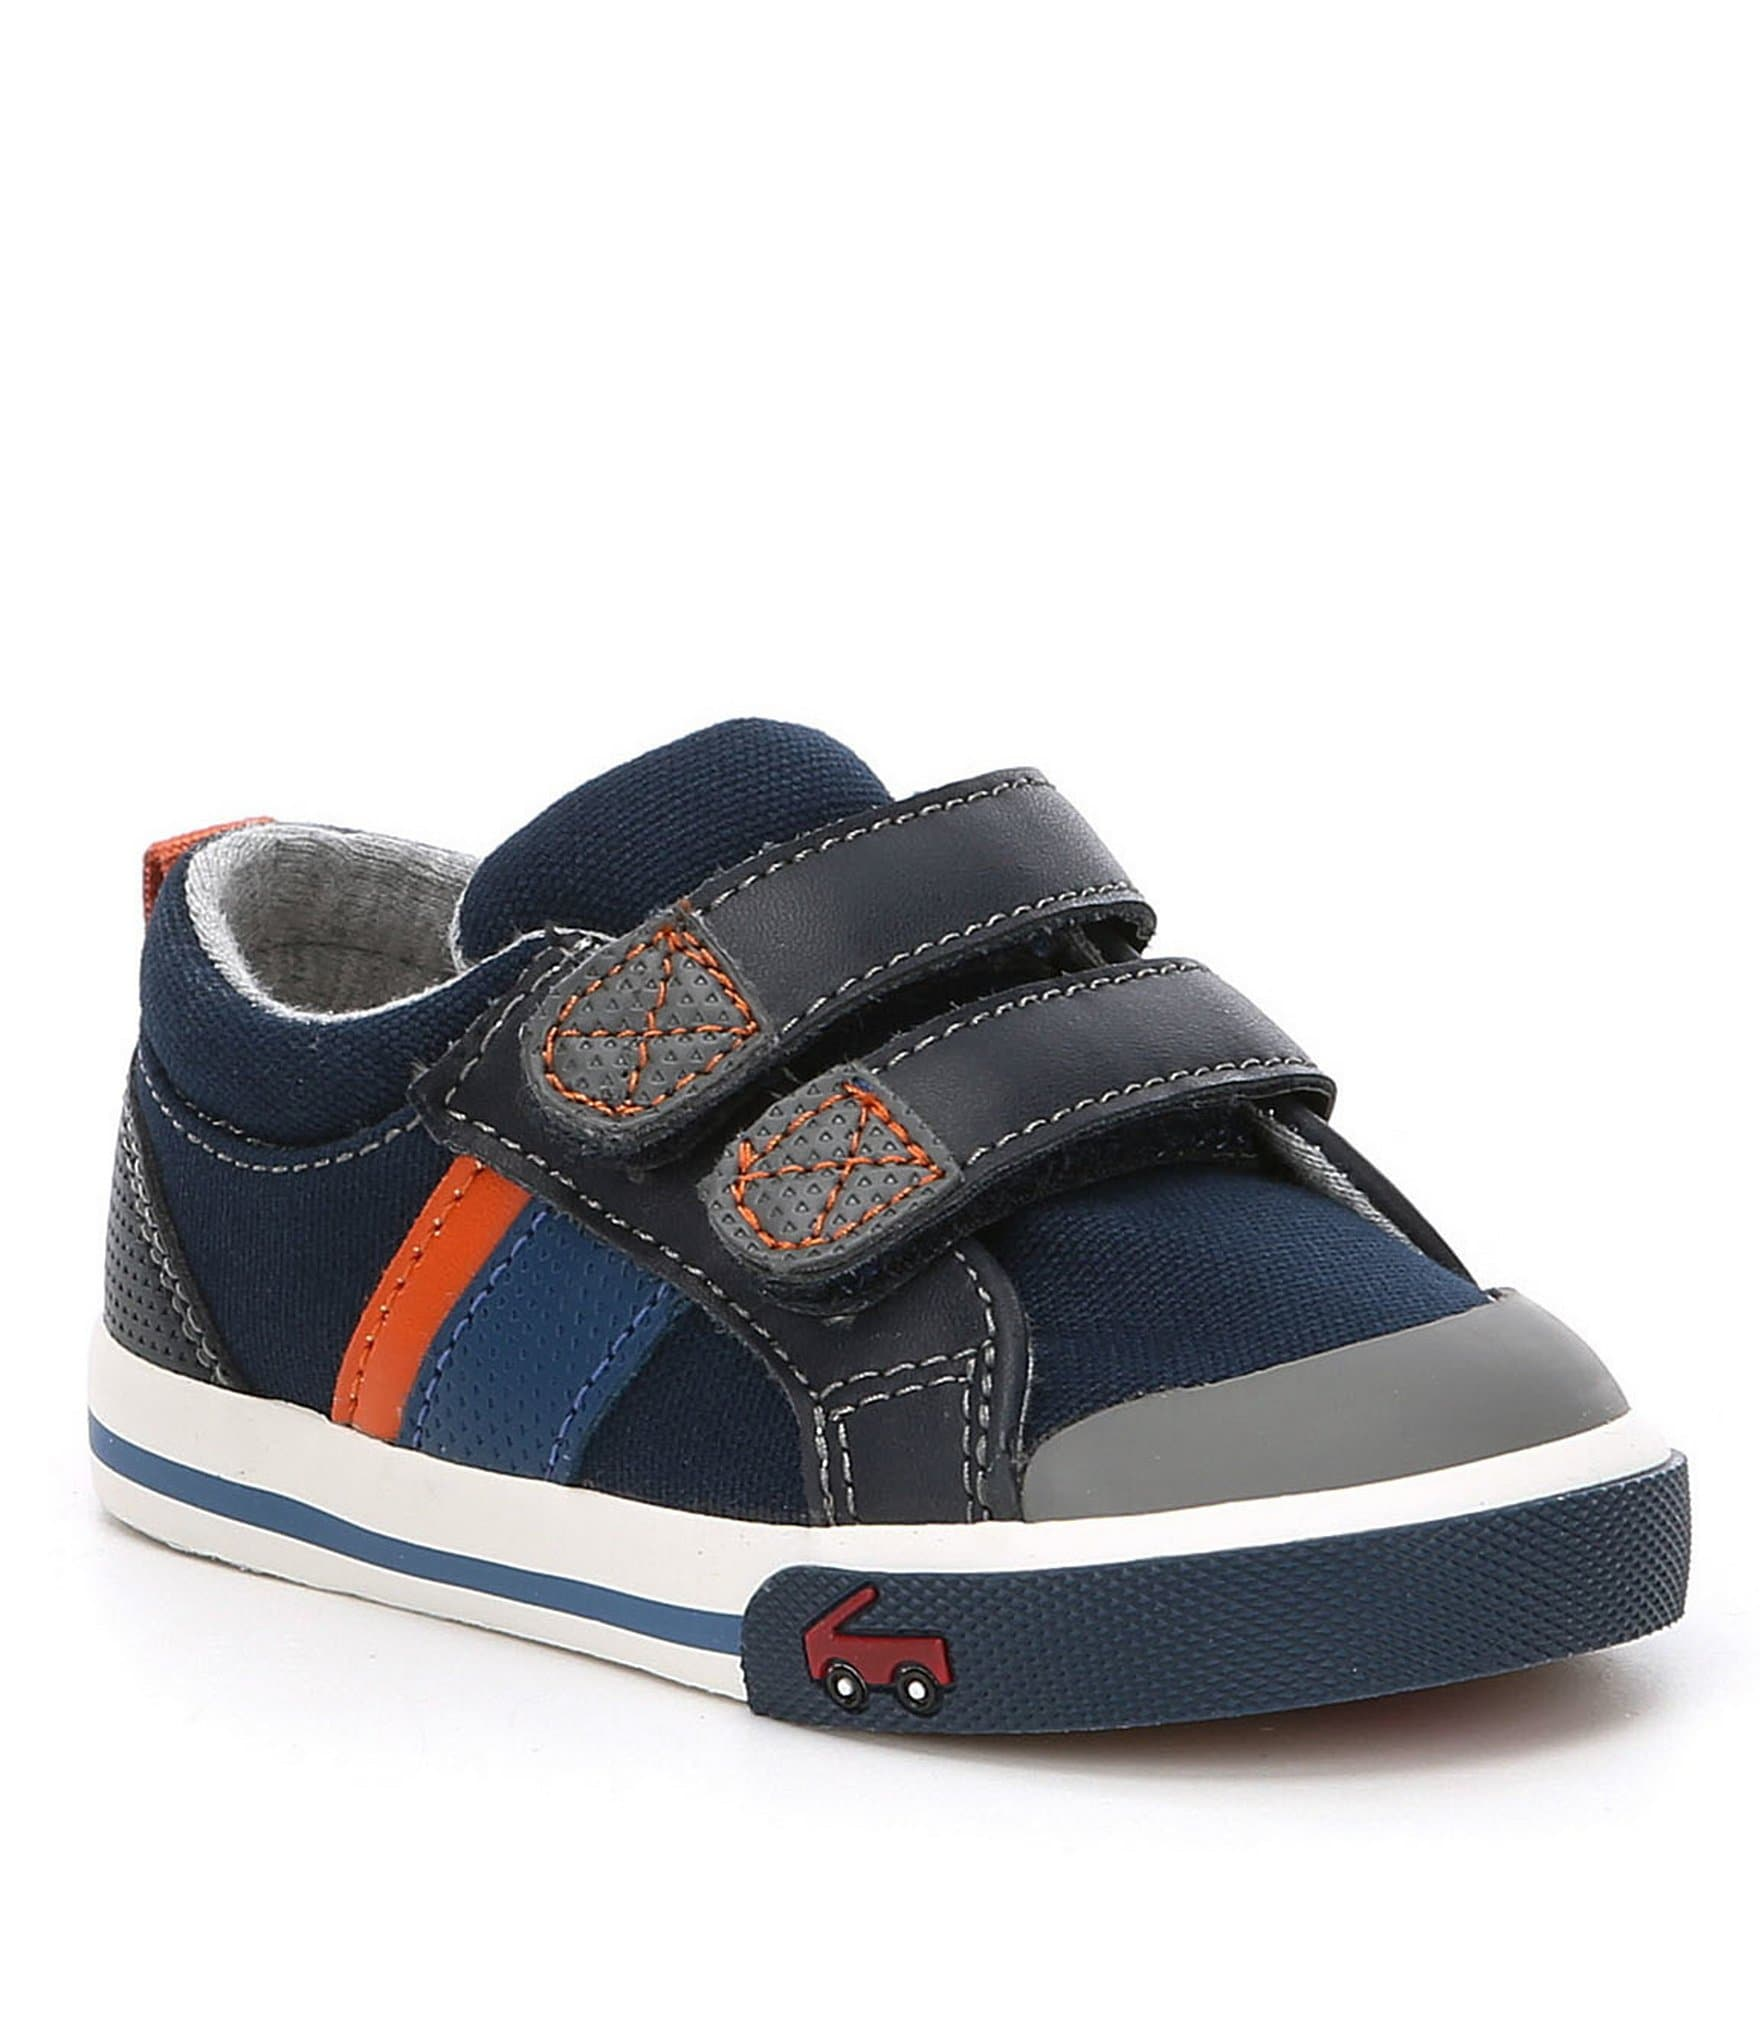 Shop for See Kai Run kids' shoes at bushlibrary.ml Browse sneakers, sandals, mary ,+ followers on Twitter.